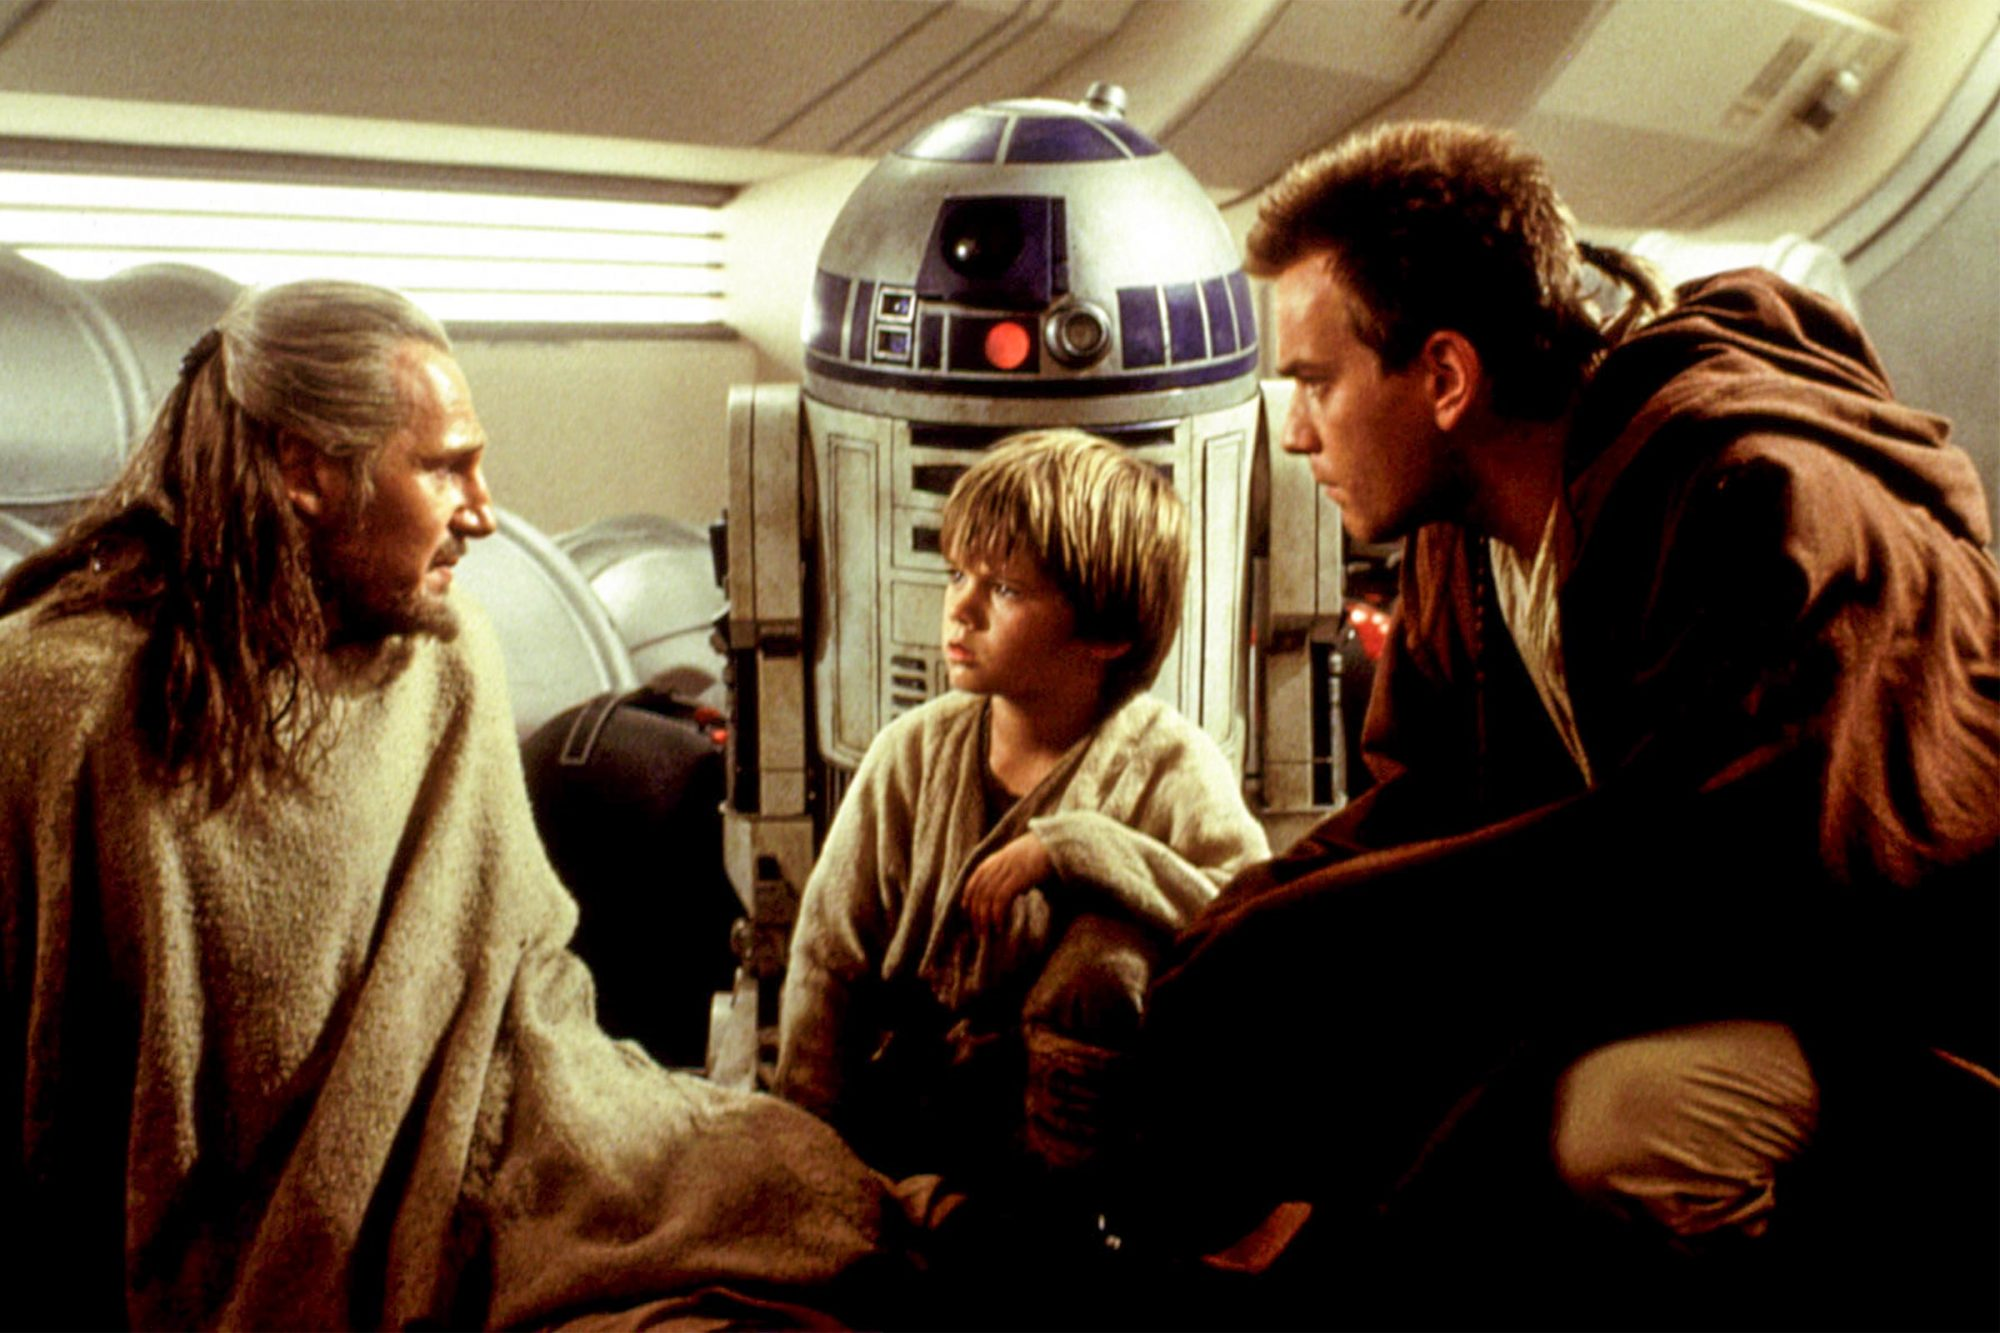 Star Wars Episode I: Phantom Menace